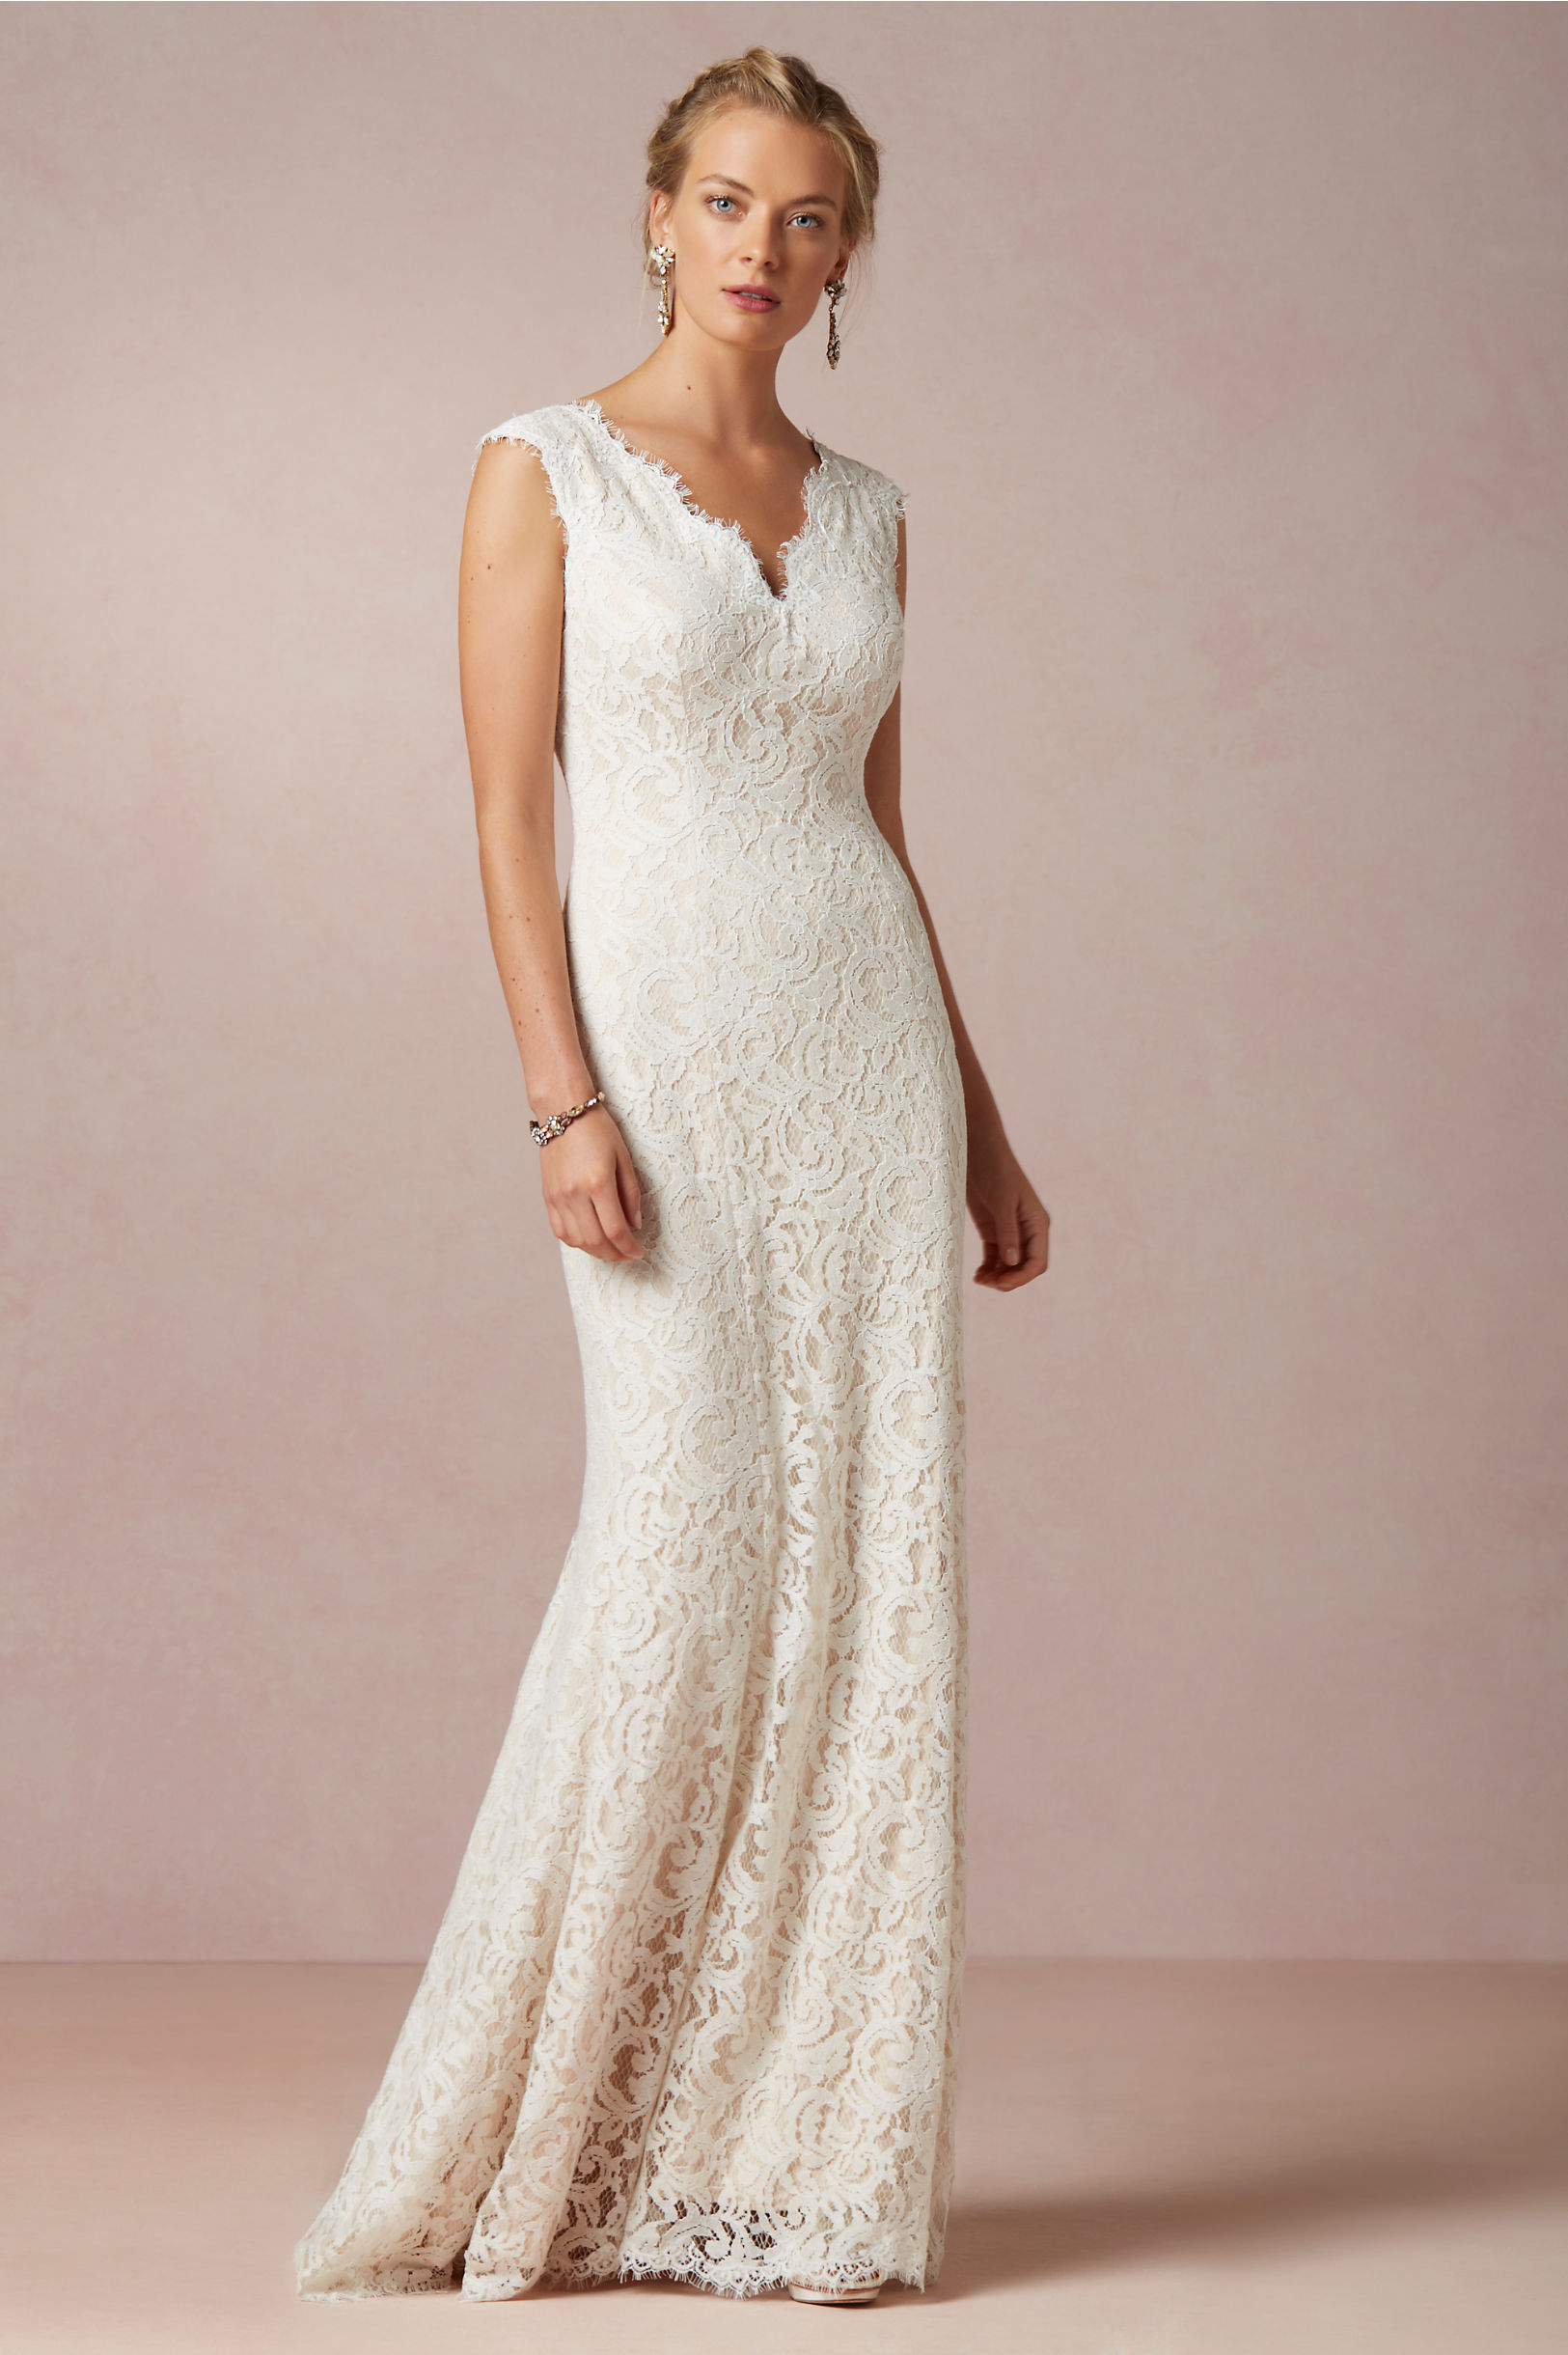 BHLDN 2014 Bridal Spring Collection (New In)   The FashionBrides